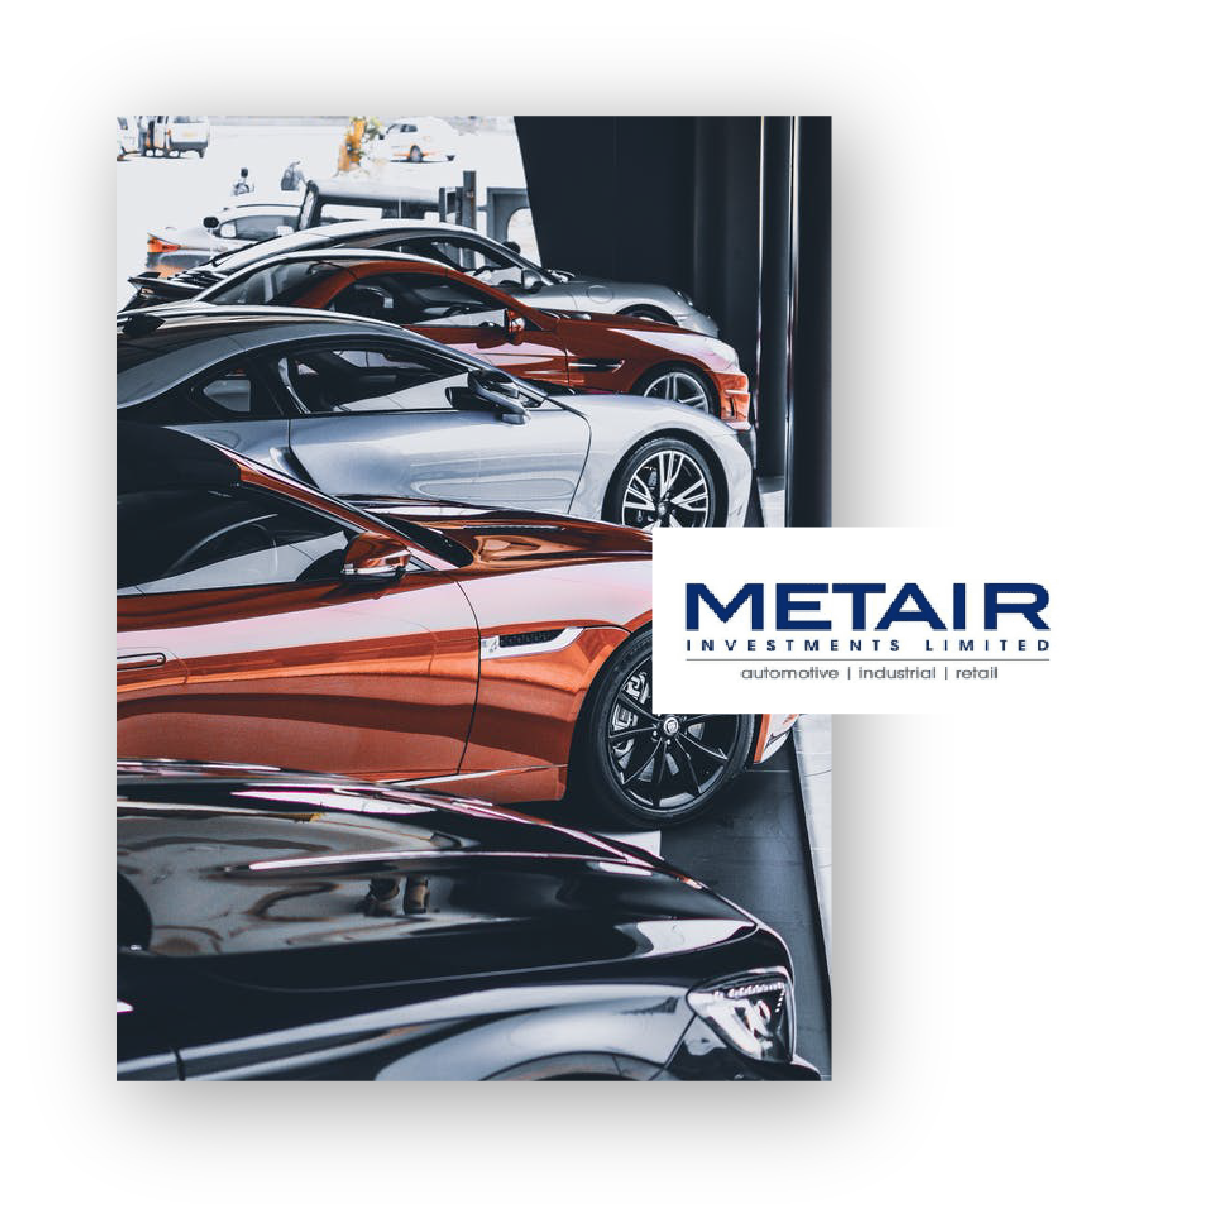 Metair Management Services